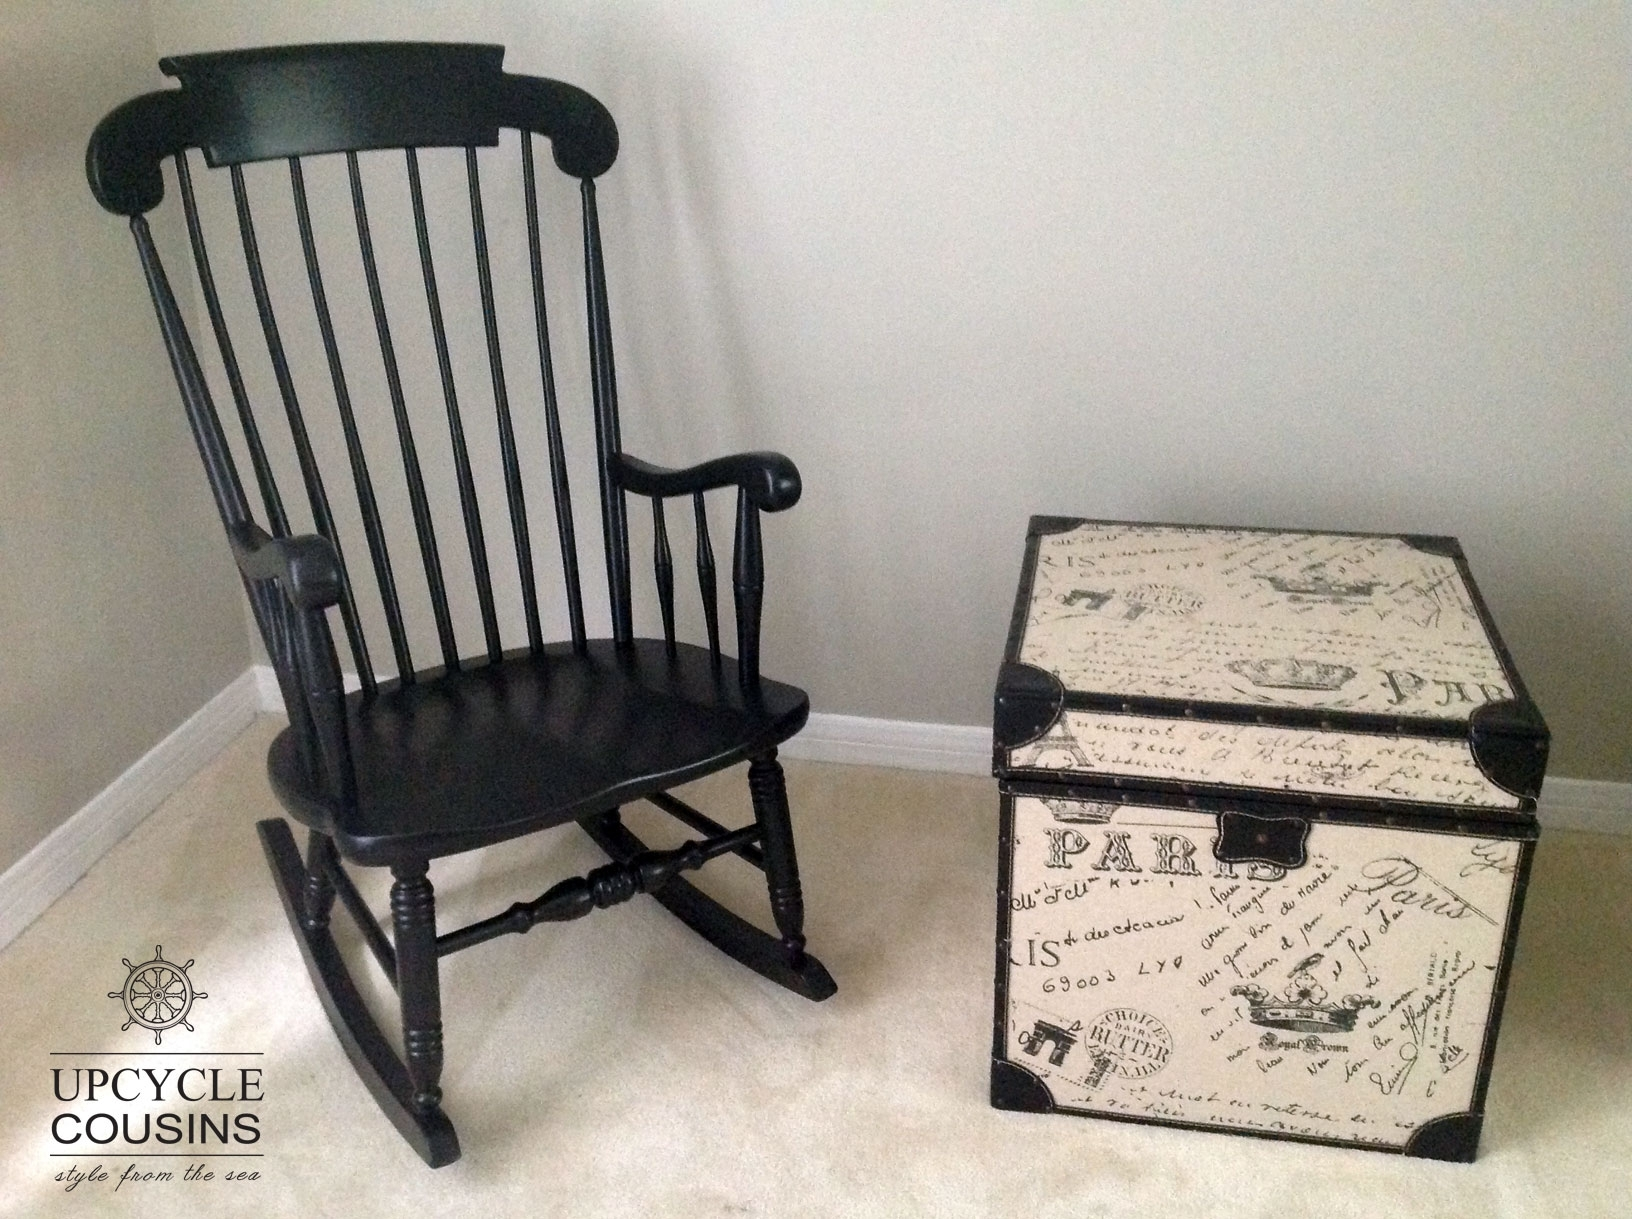 Cool Black Indoor/outdoor Rocking Chair | Upcycle Cousins With Regard To Upcycled Rocking Chairs (#4 of 15)